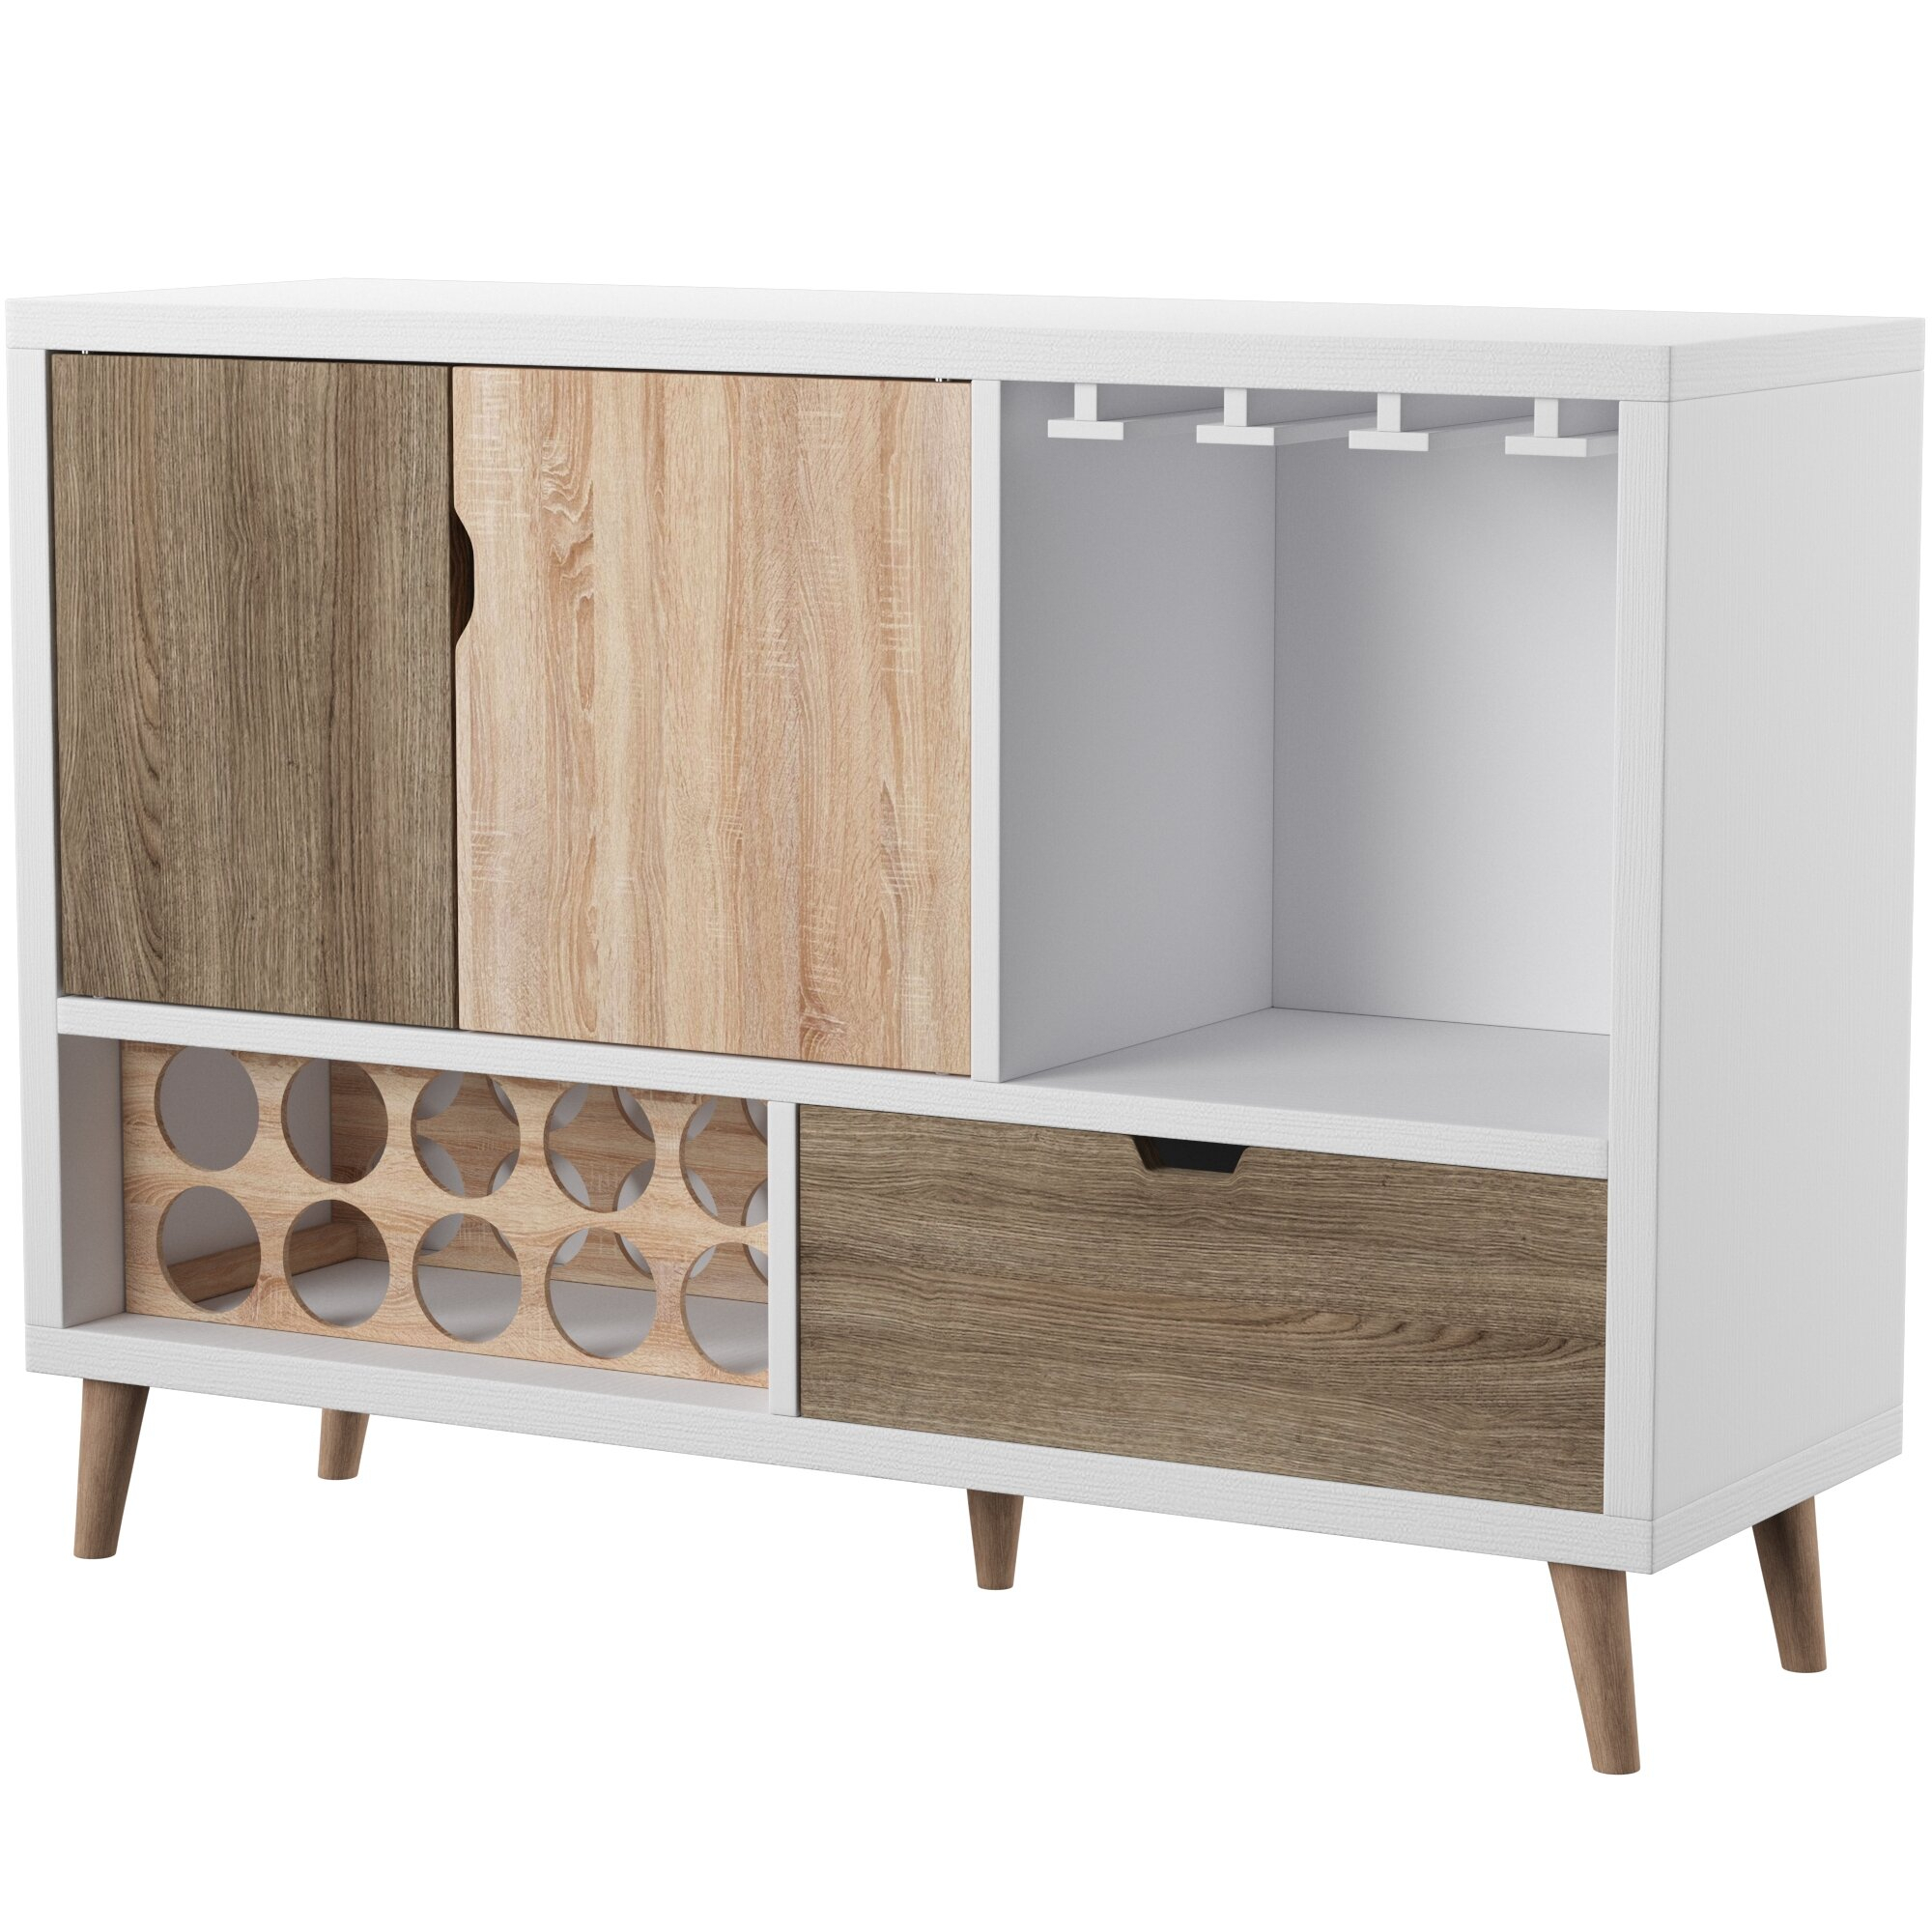 Modern Mercury Row Sideboards + Buffets | Allmodern Within Best And Newest Longley Sideboards (View 8 of 20)